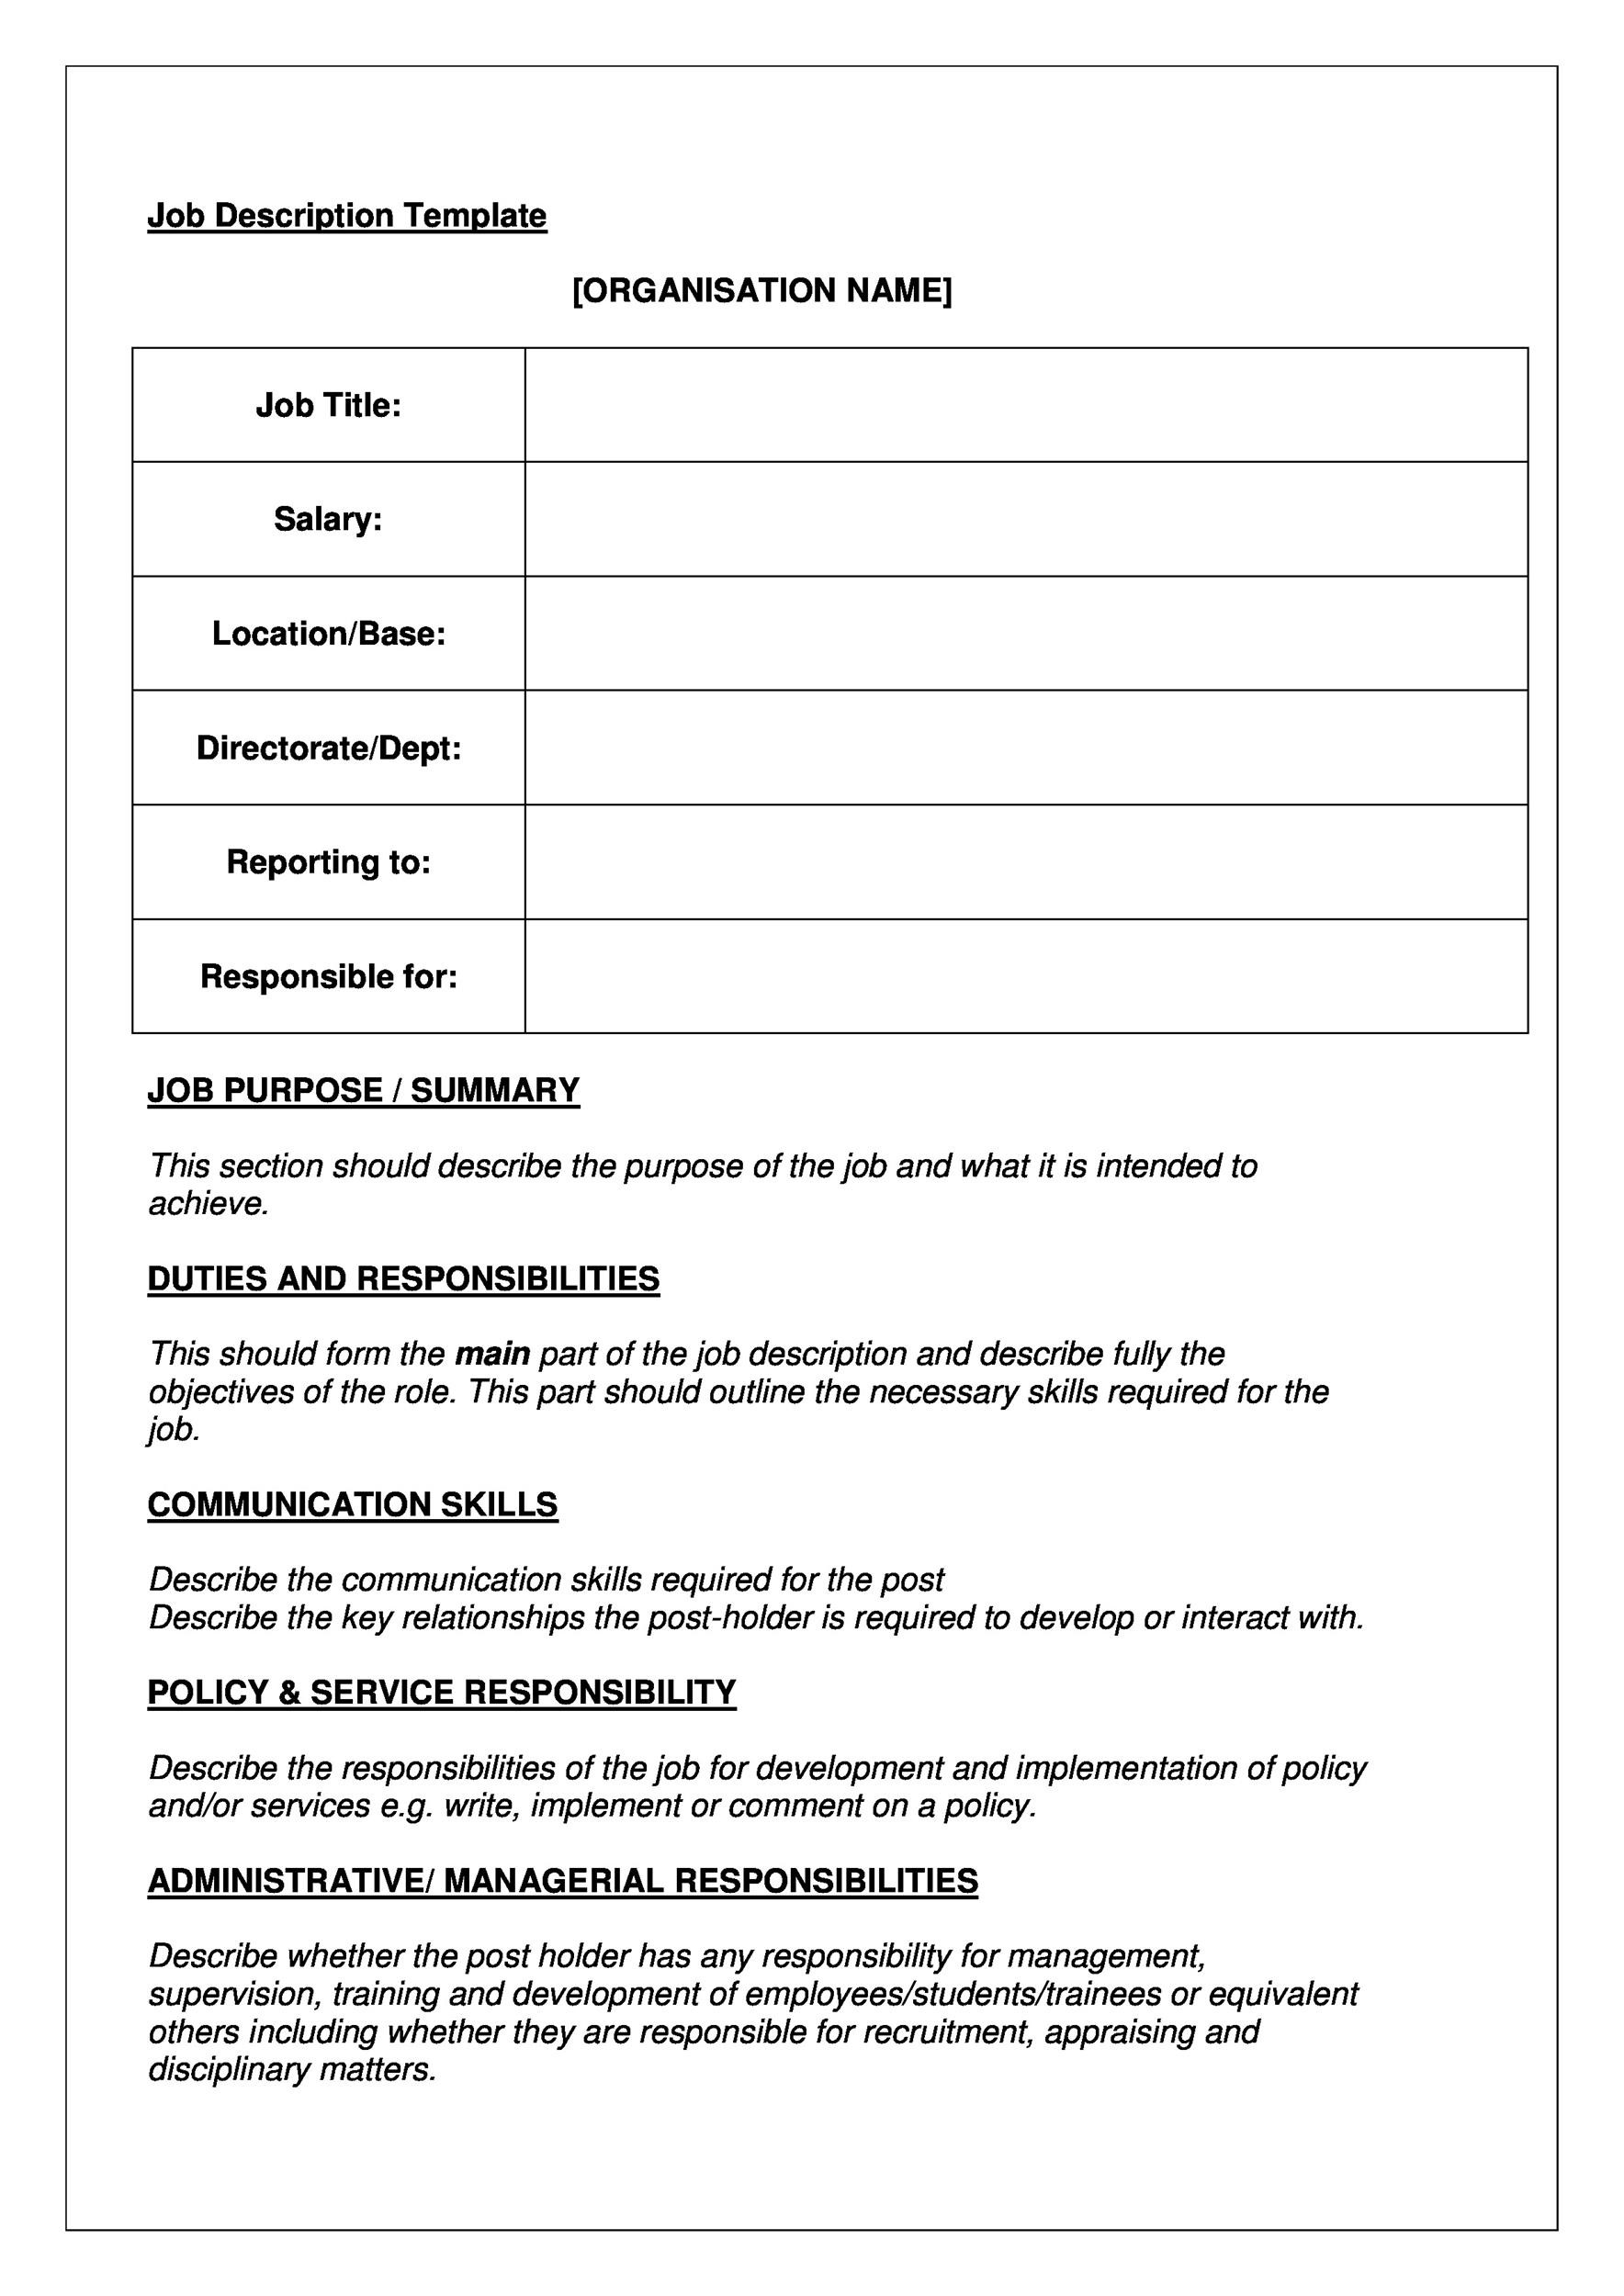 Job Description Template 09